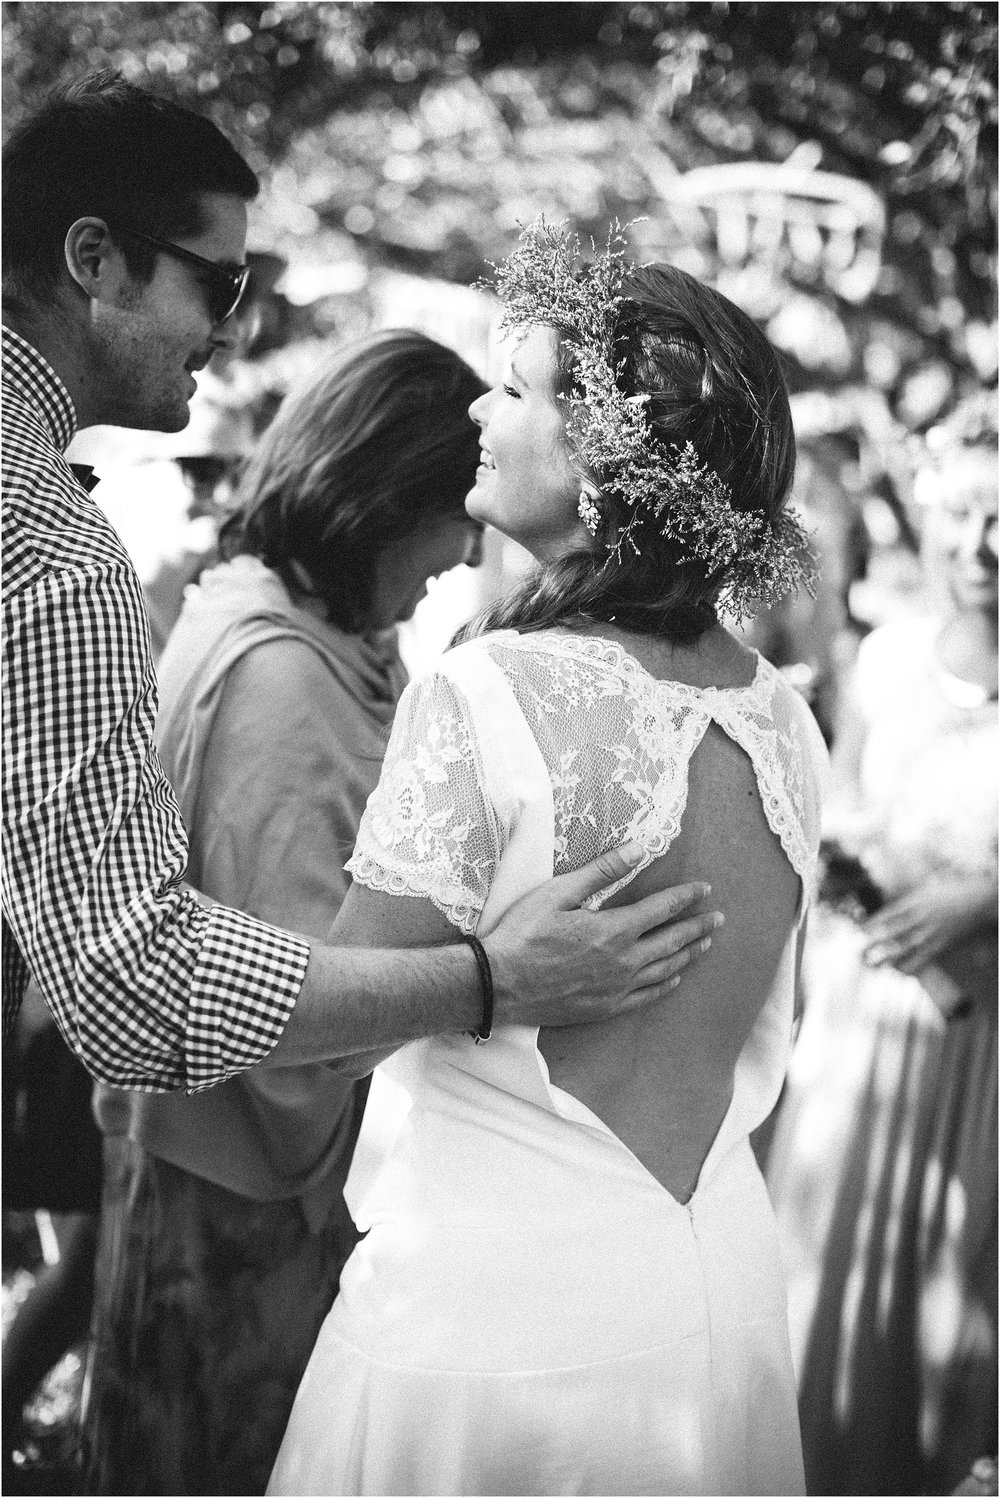 Ceremony_FionaClairPhotography-343.jpg